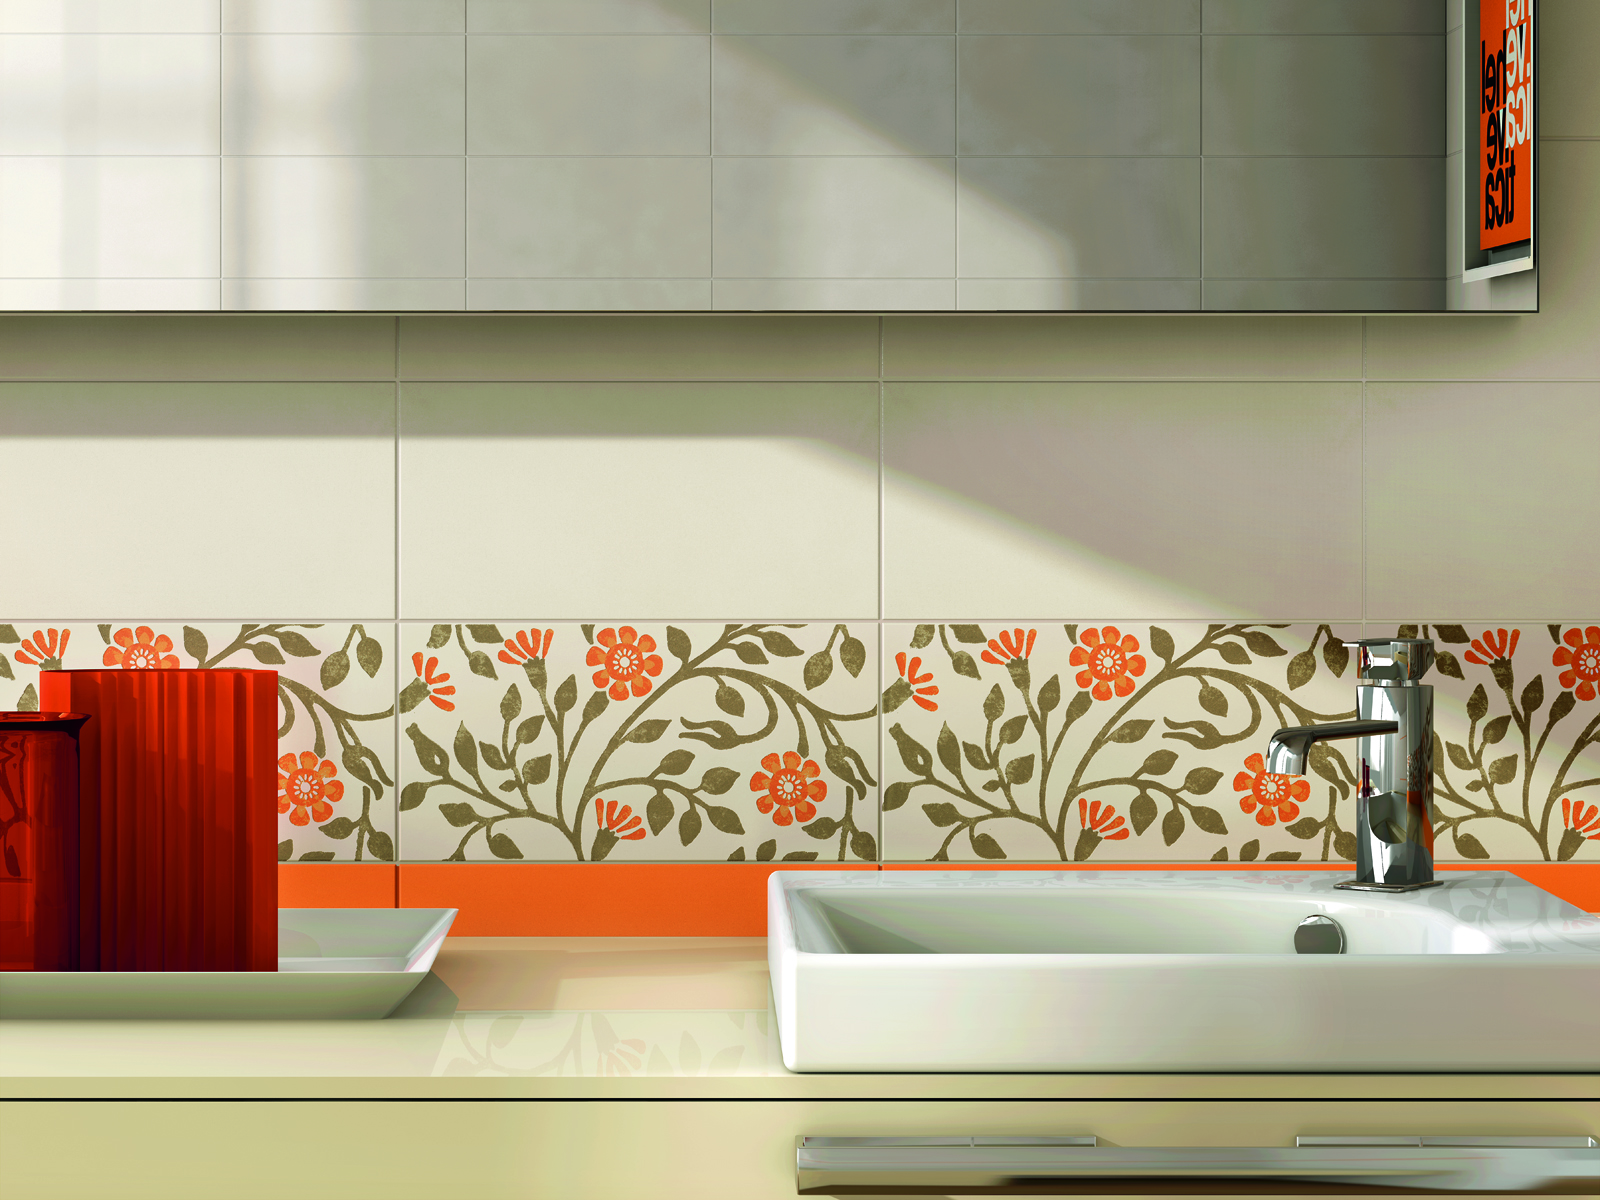 Covent Garden Kitchen Covent Garden Kitchen And Bathroom Wall Tiling Marazzi